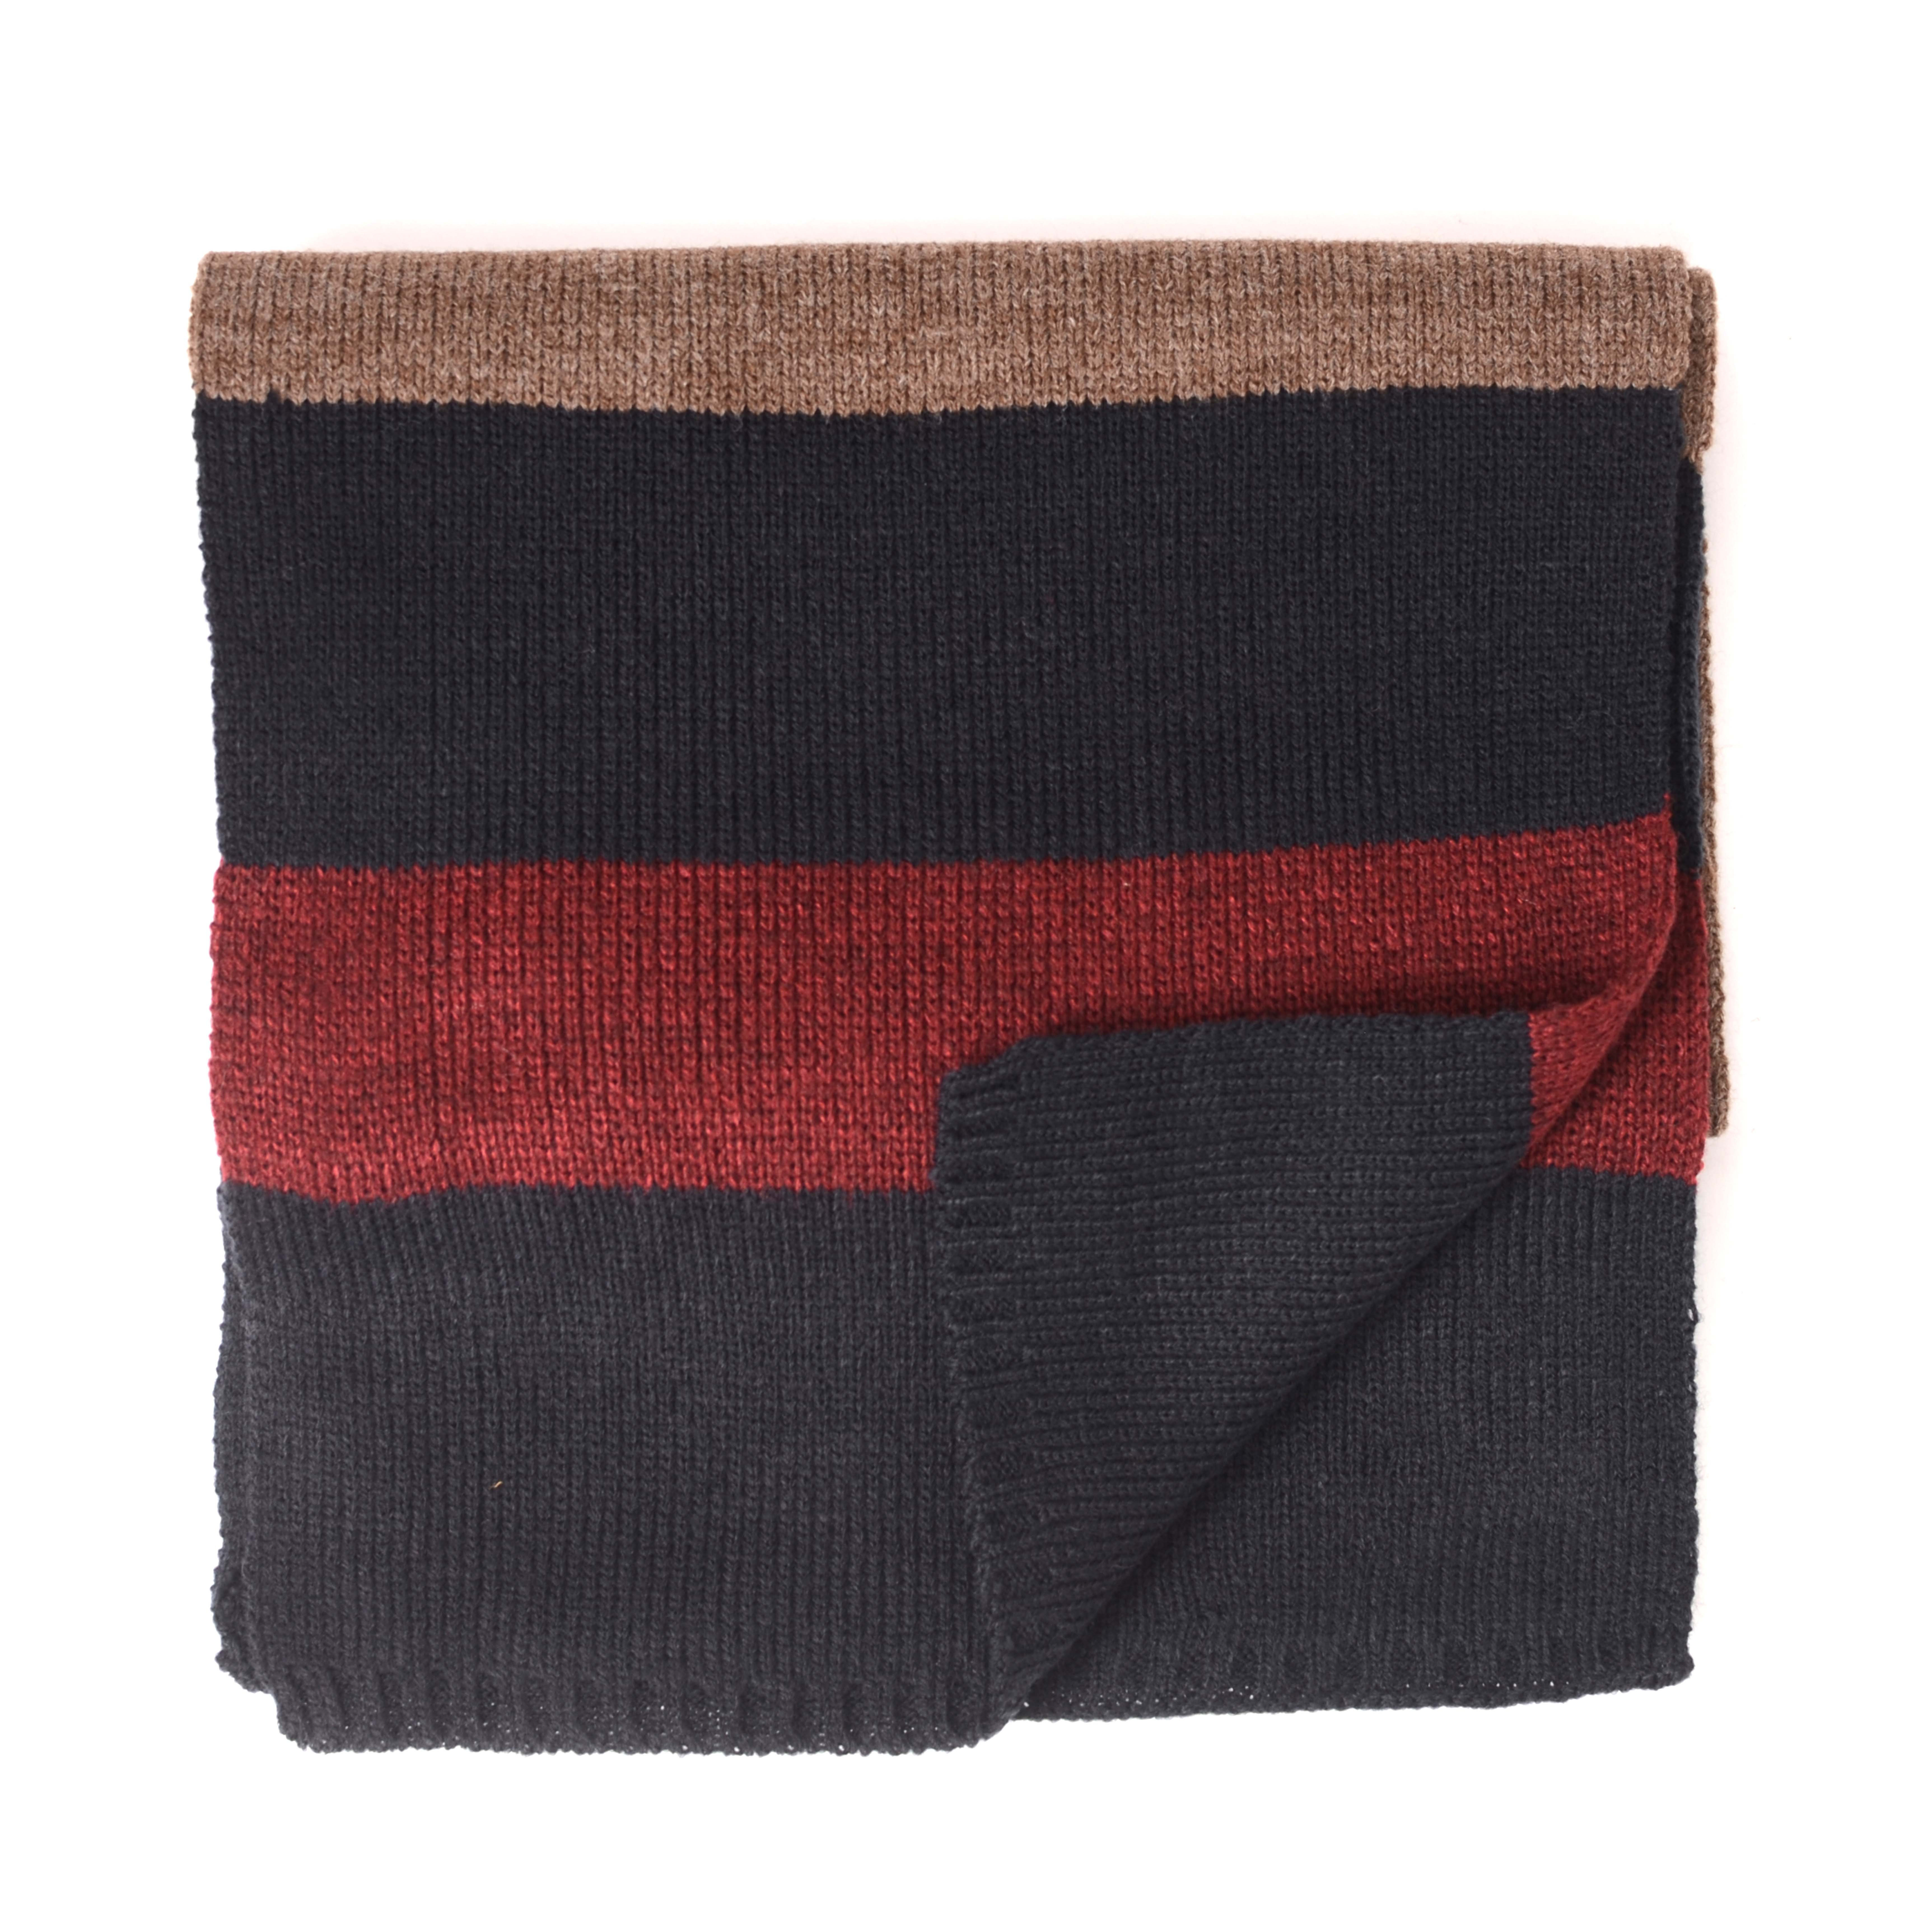 Jordi   Scarf knitted with blocks brown